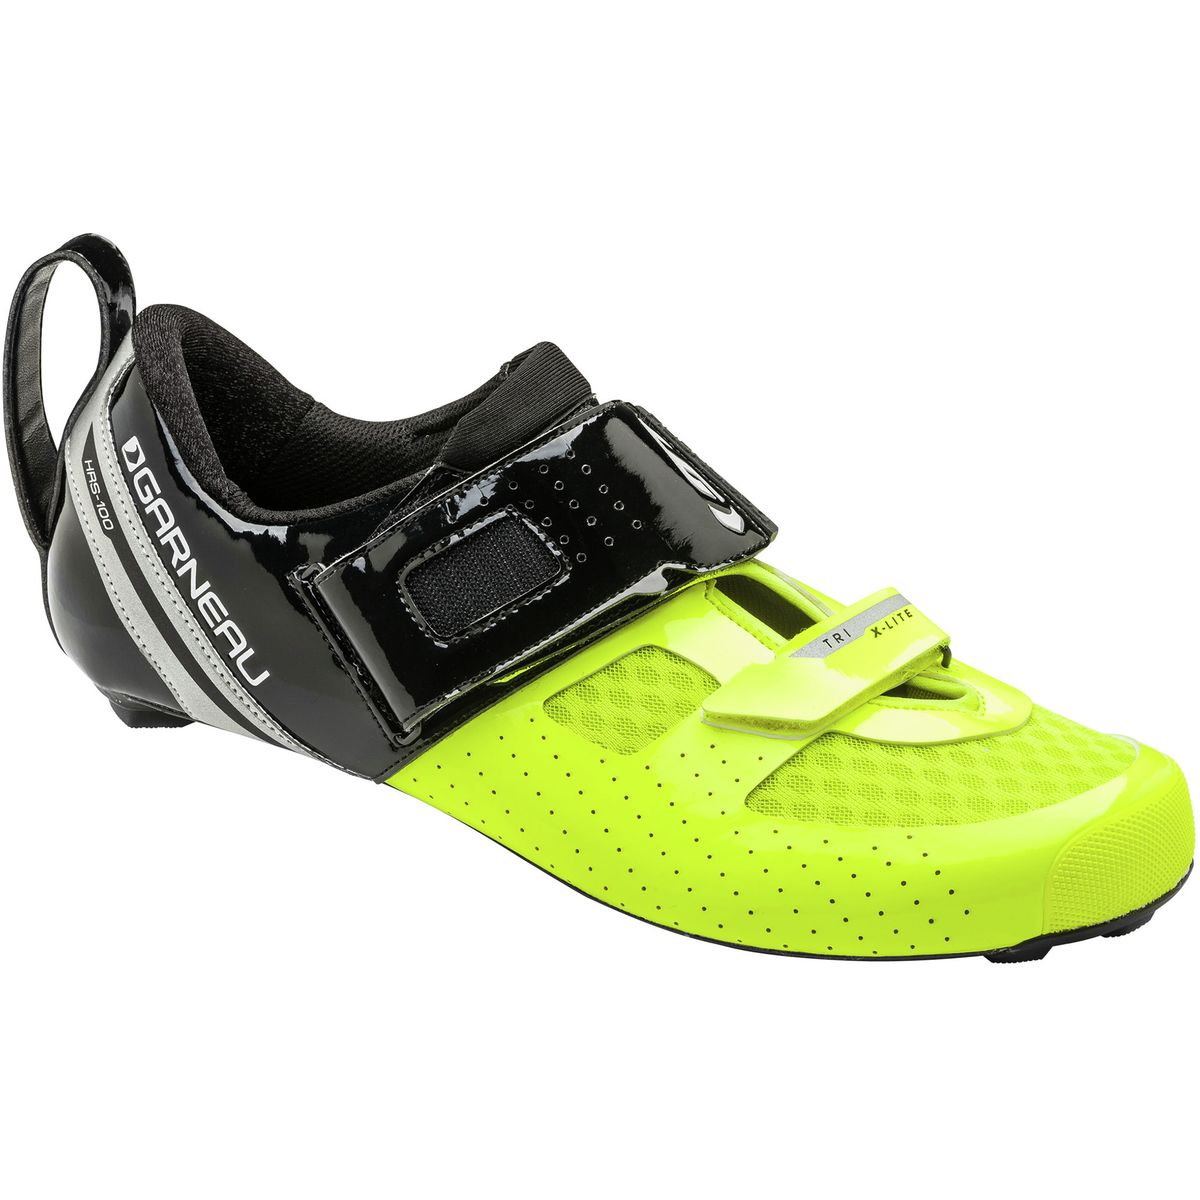 louis garneau tri x lite ii tri shoe men 39 s competitive cyclist. Black Bedroom Furniture Sets. Home Design Ideas